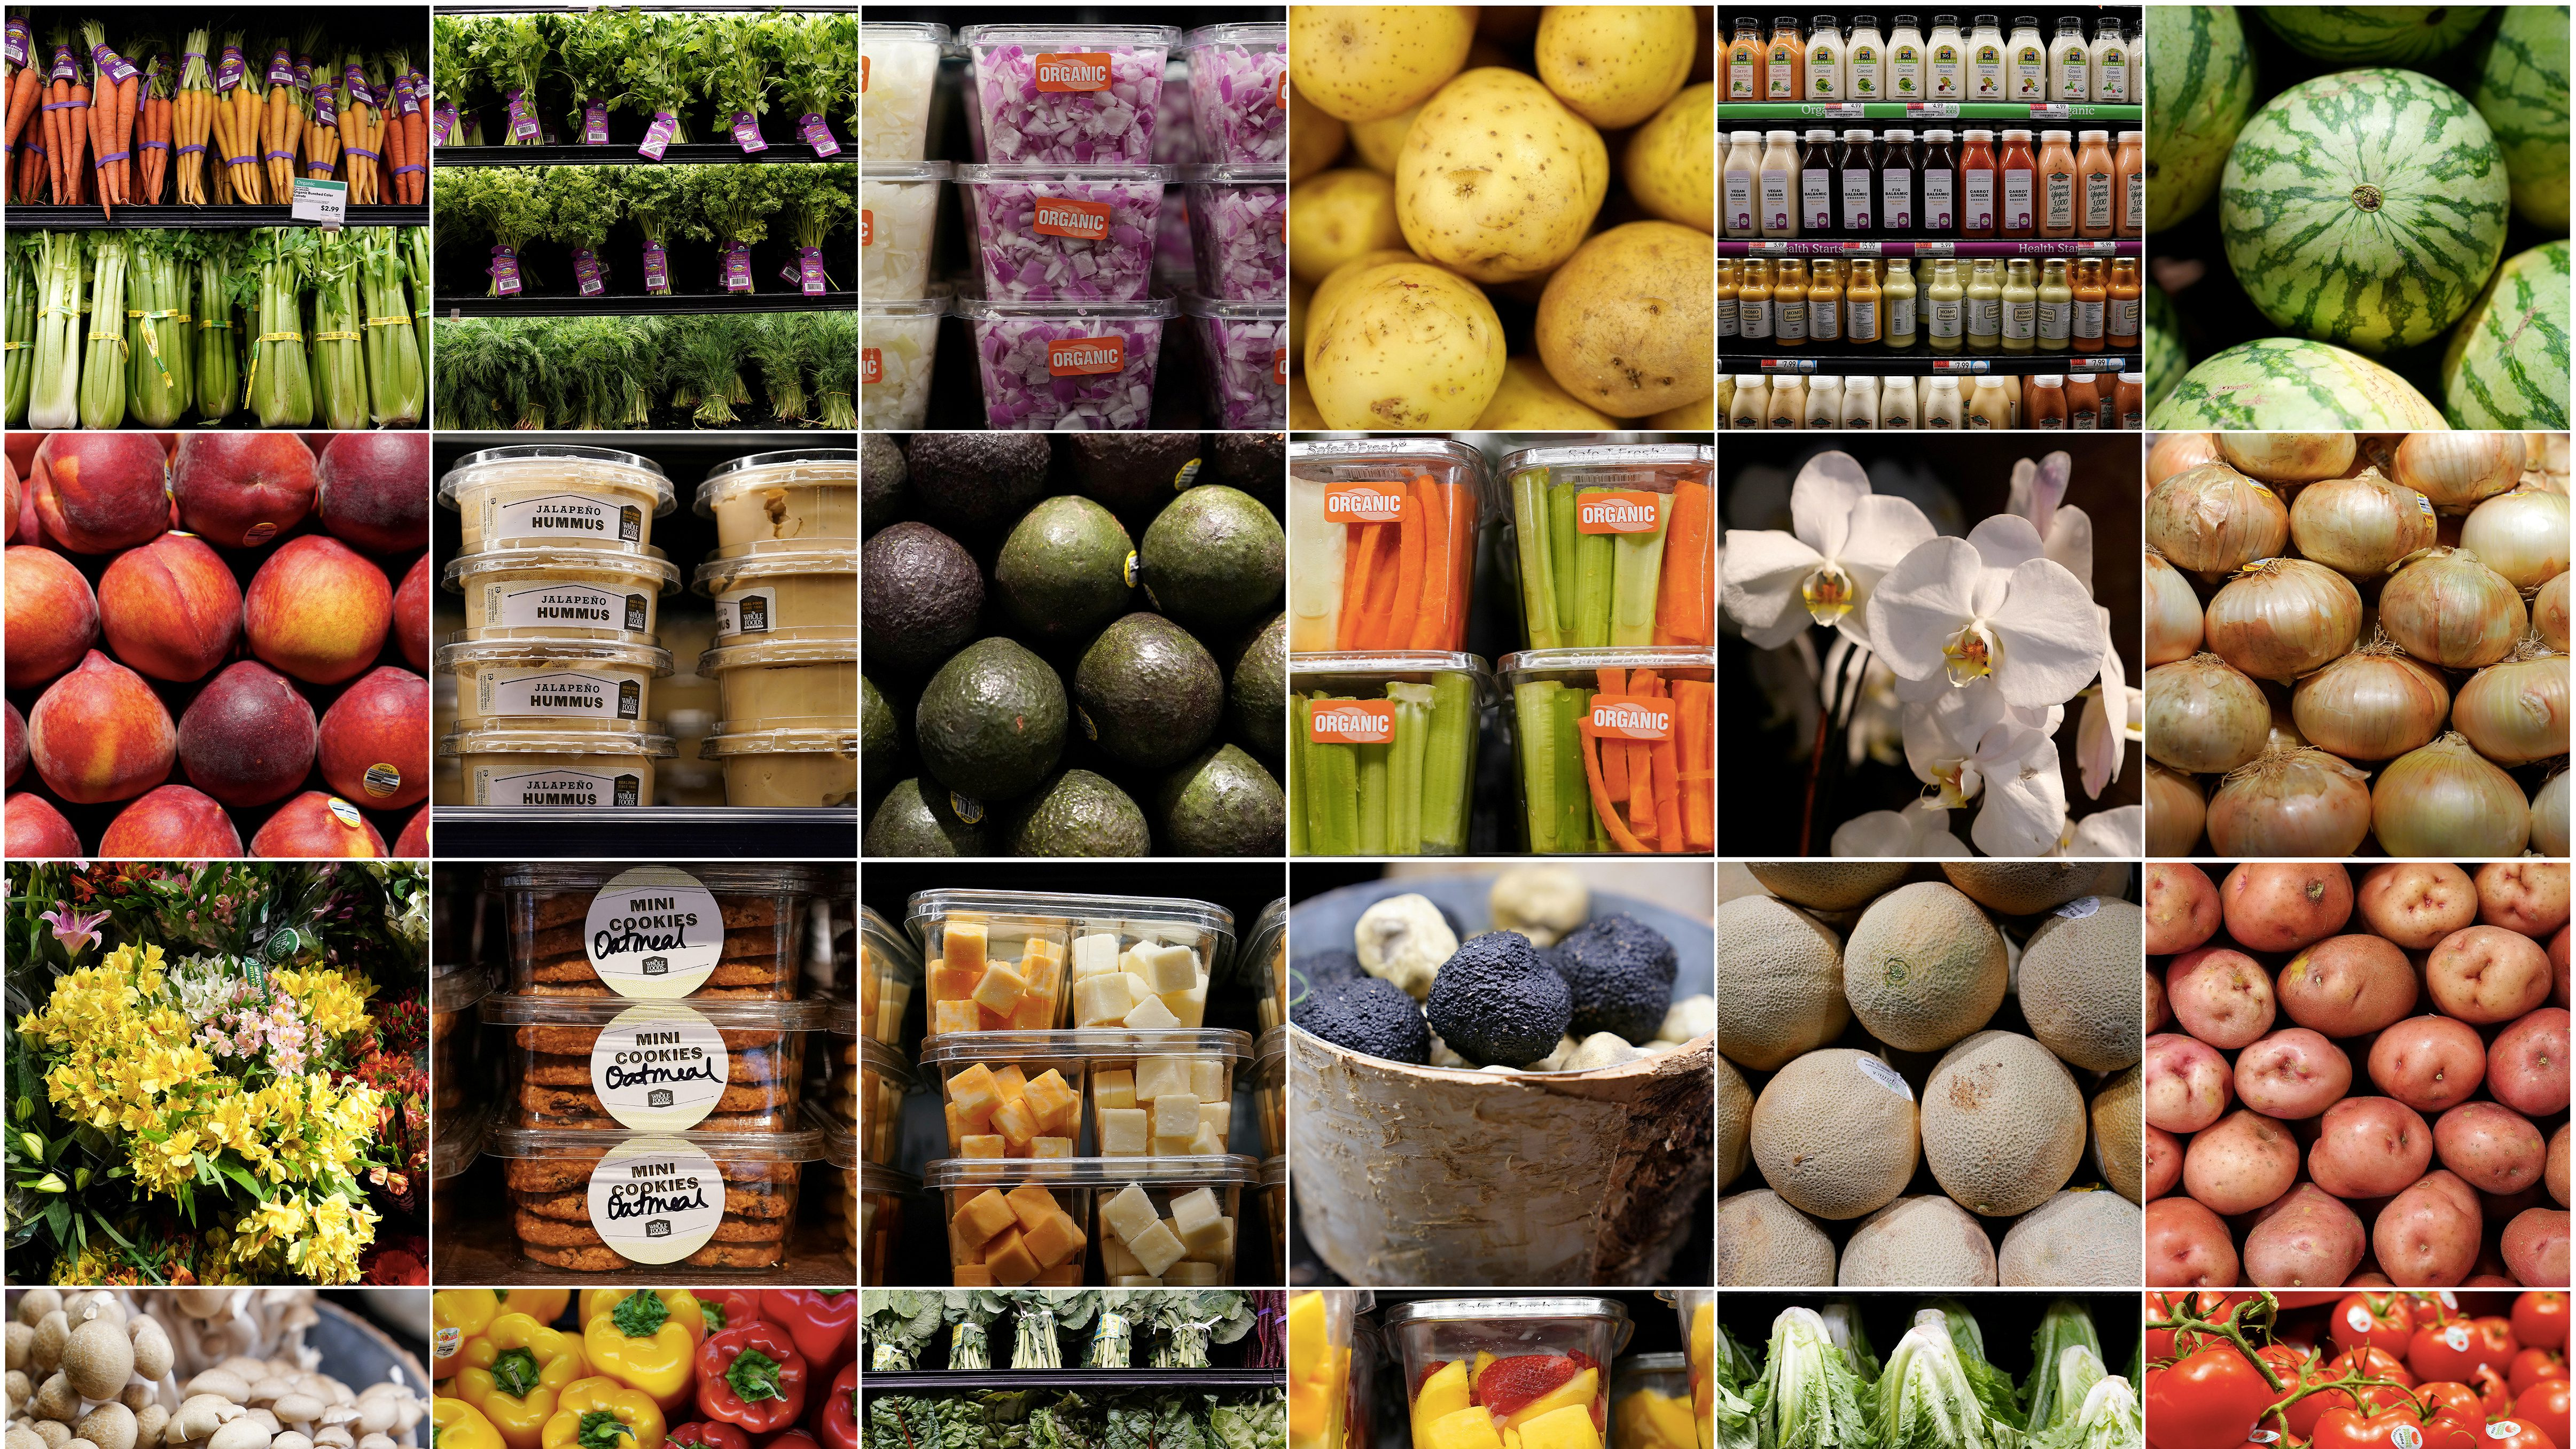 A combination photo shows food and plants for sale inside a Whole Foods Market in the Manhattan borough of New York City, New York, U.S. June 16, 2017.